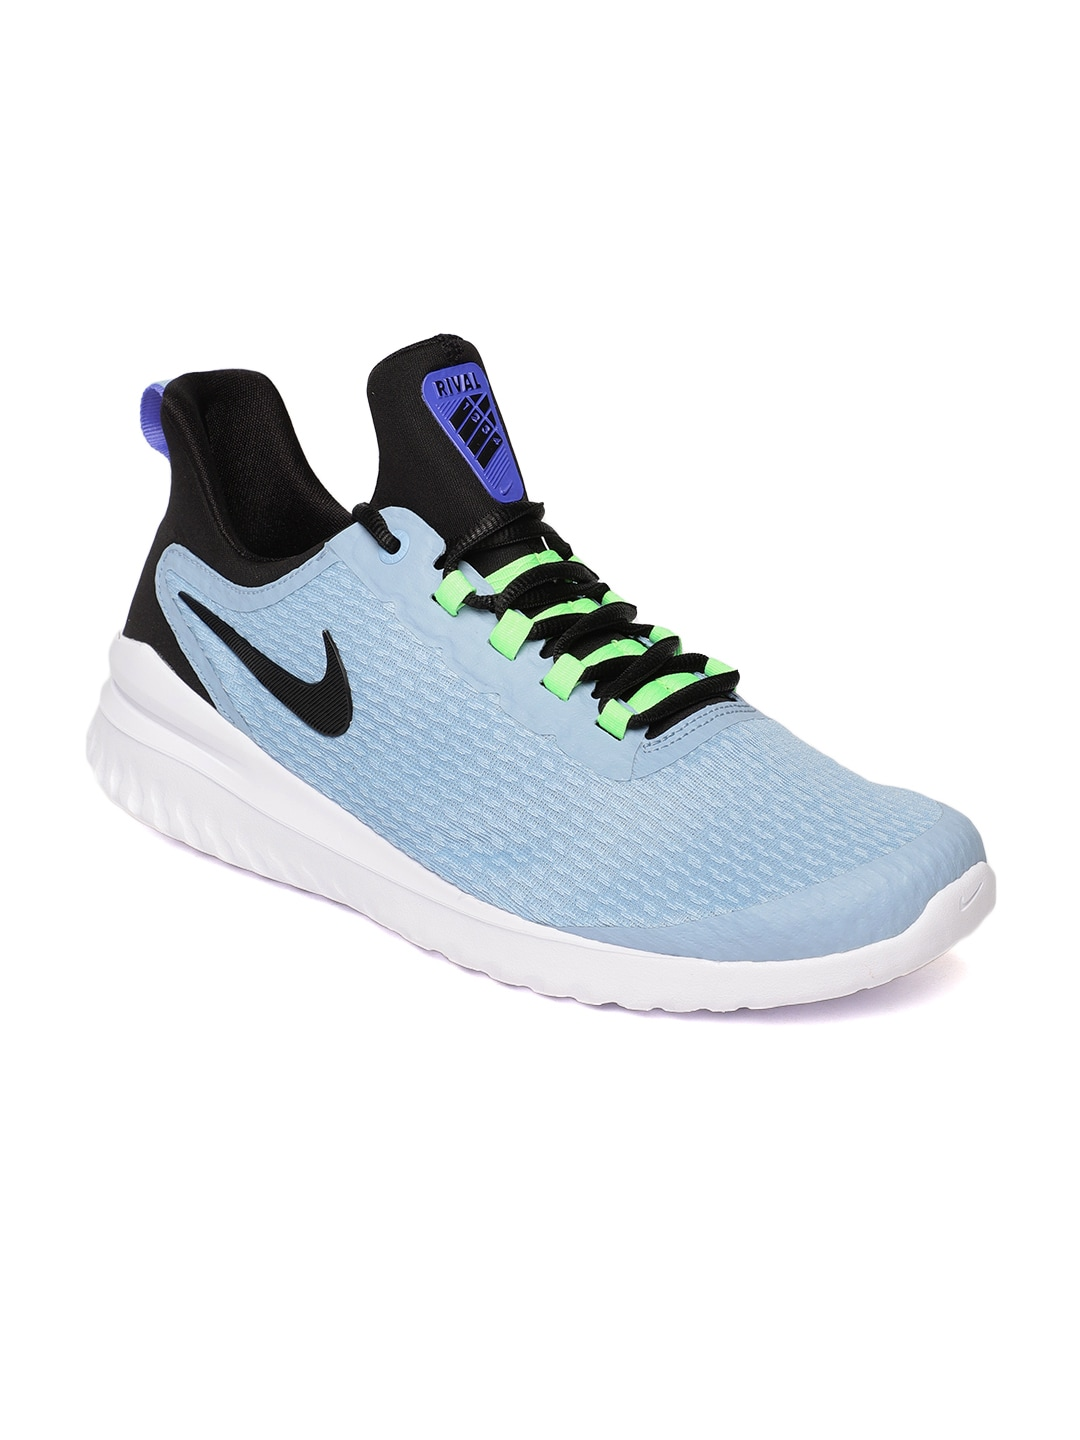 905470e9b59 Nike Sport Shoe - Buy Nike Sport Shoes At Best Price Online